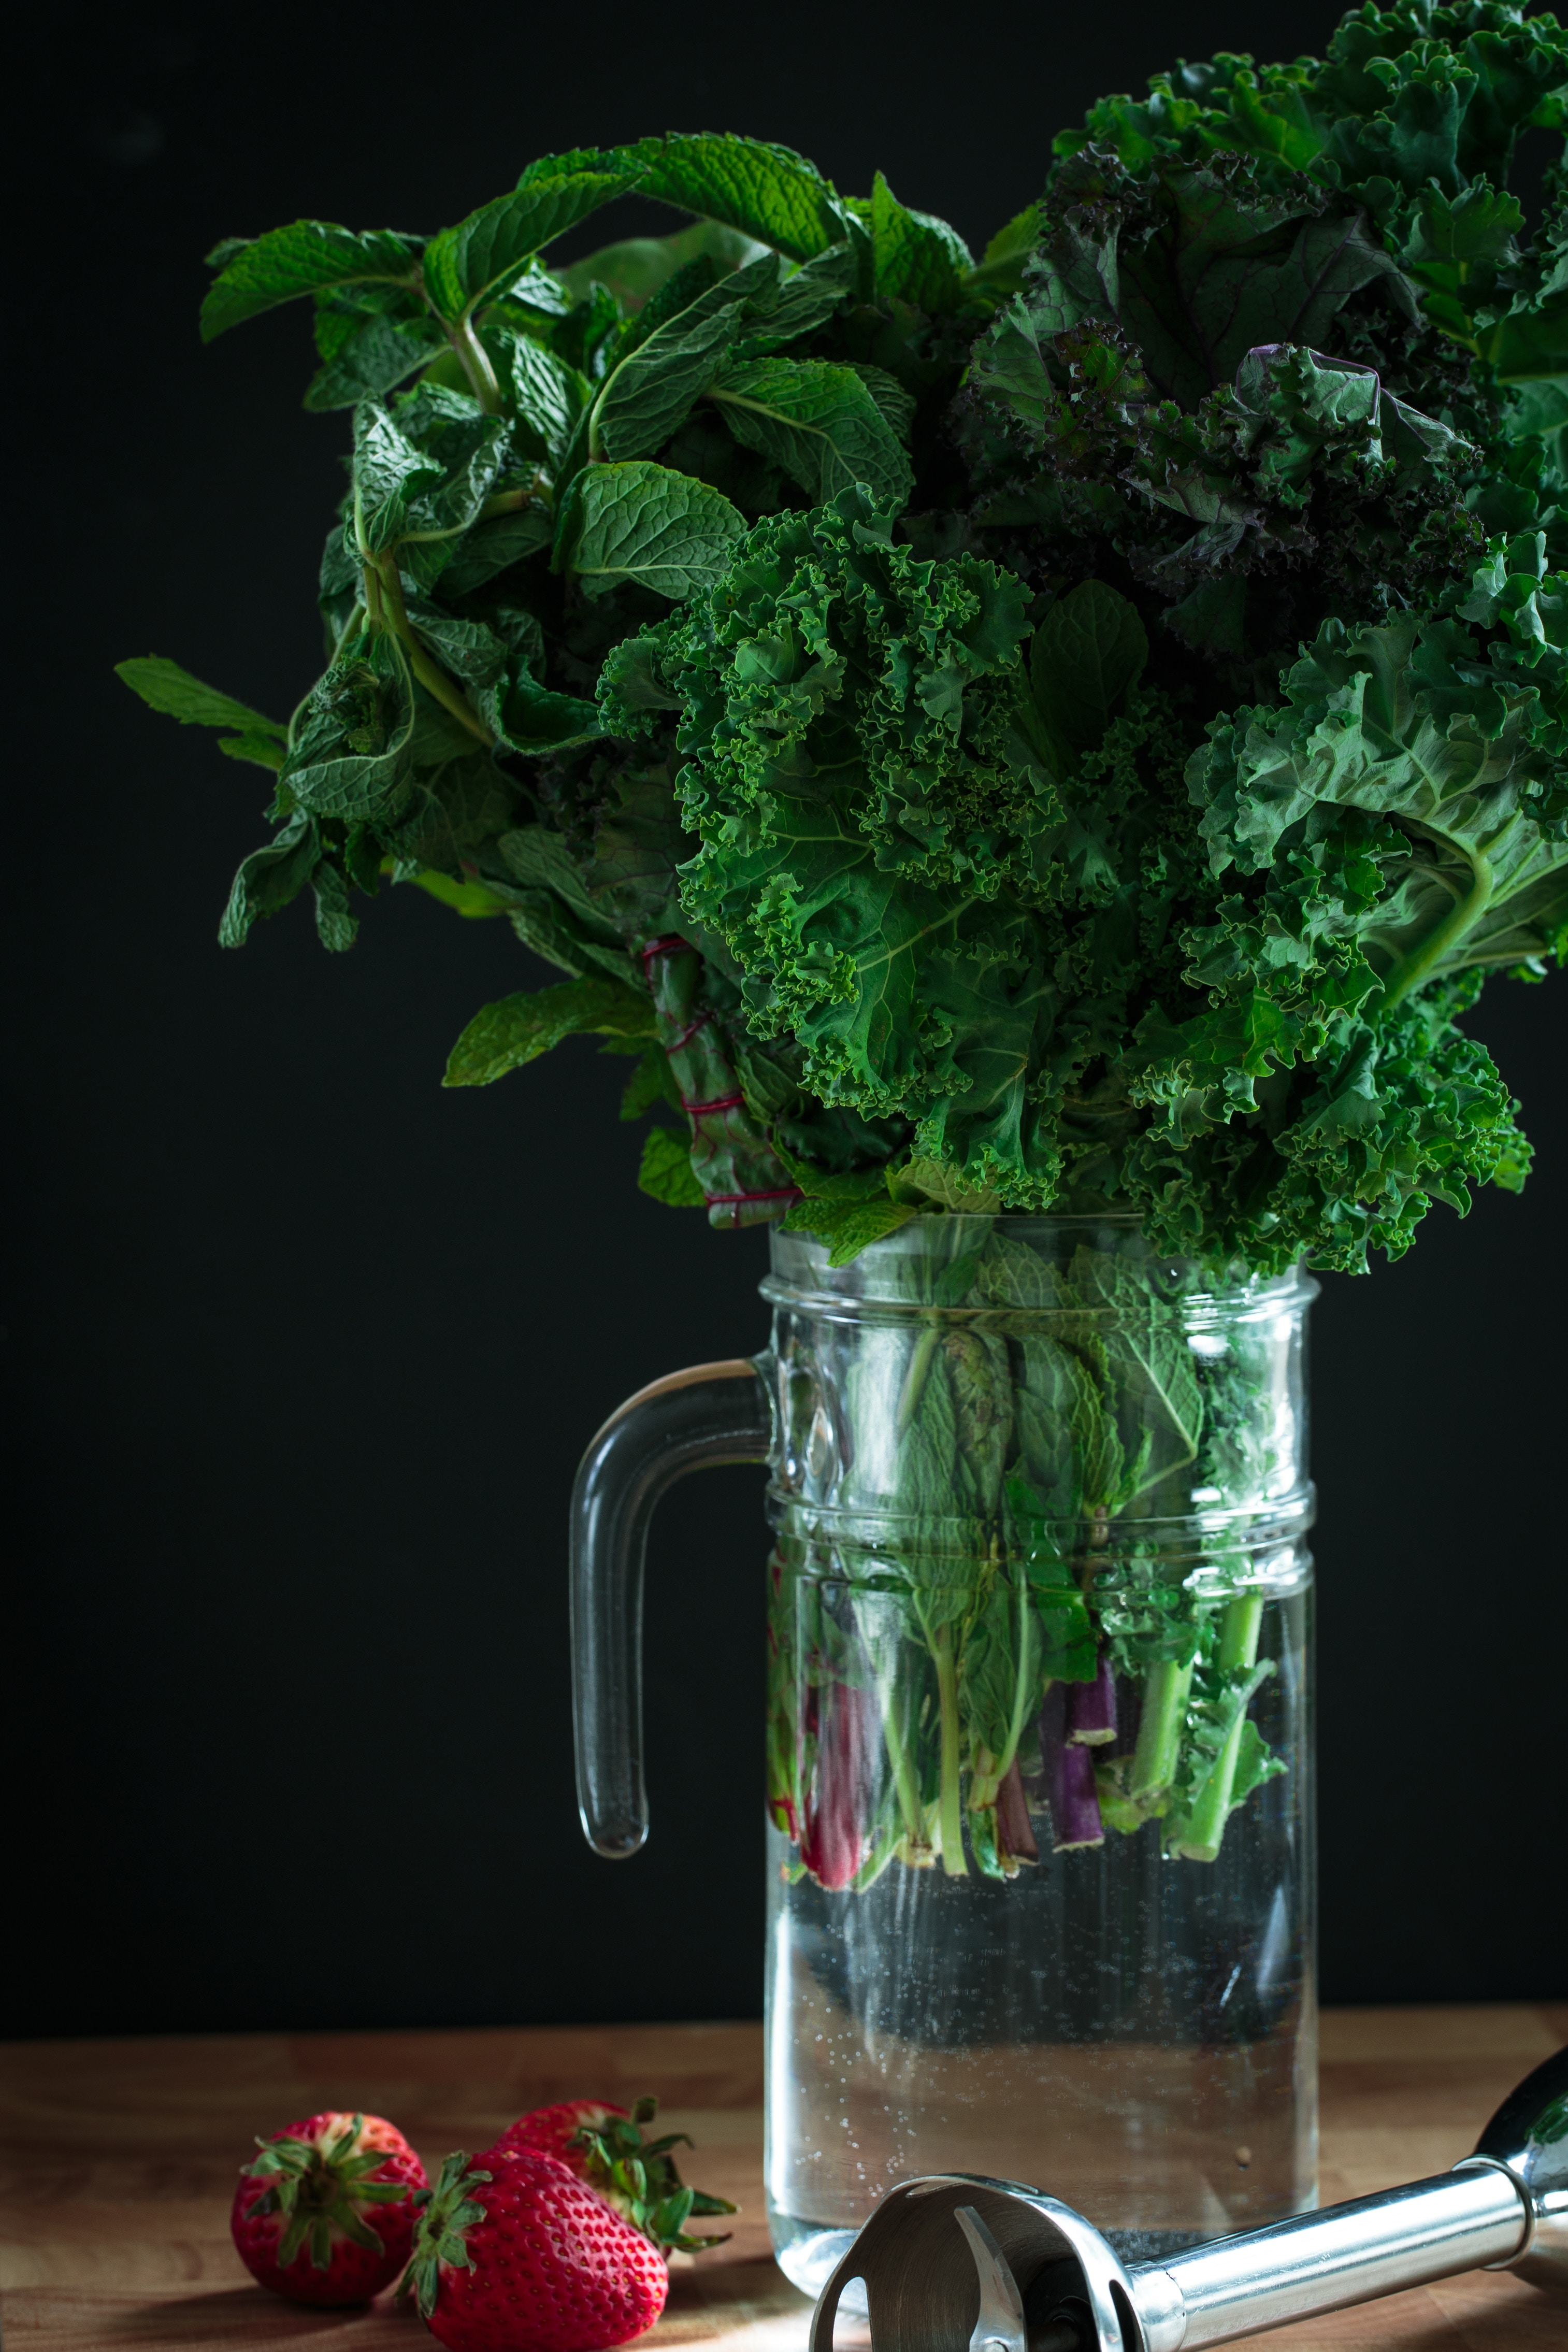 Five Ways to Sneak Greens MTHFR Kids